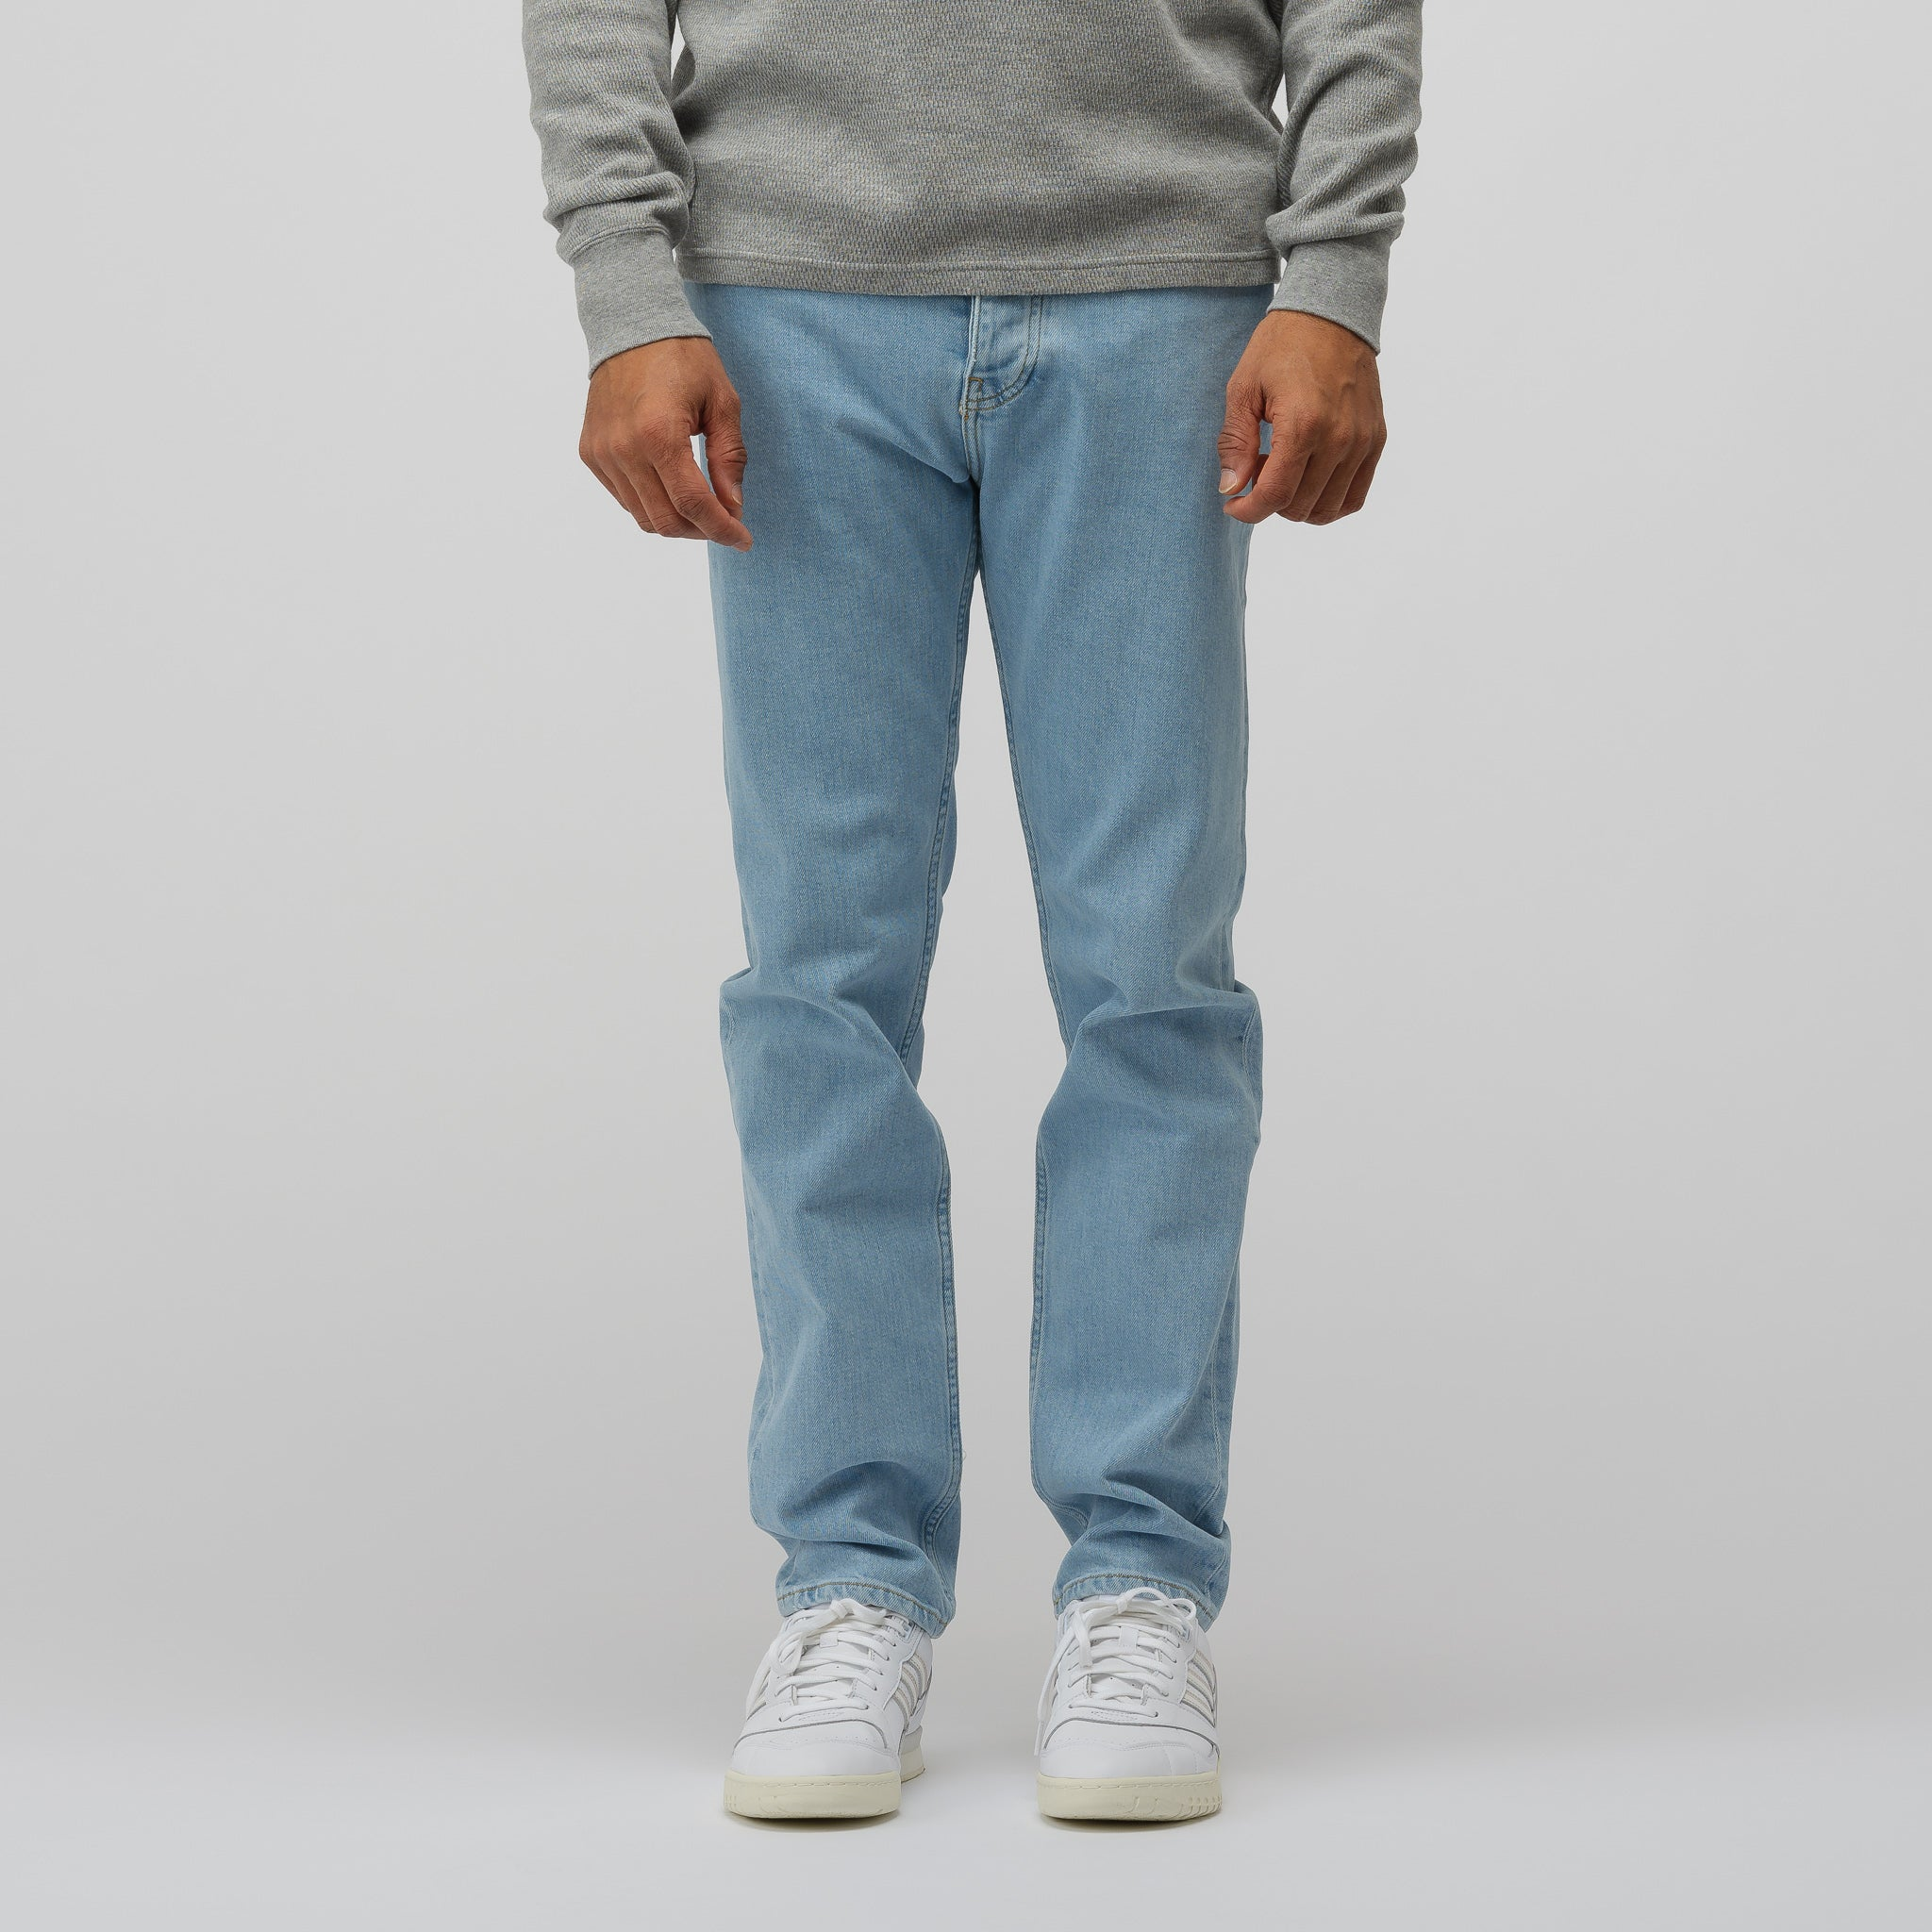 Narrow Leg Jeans in Macho Blue